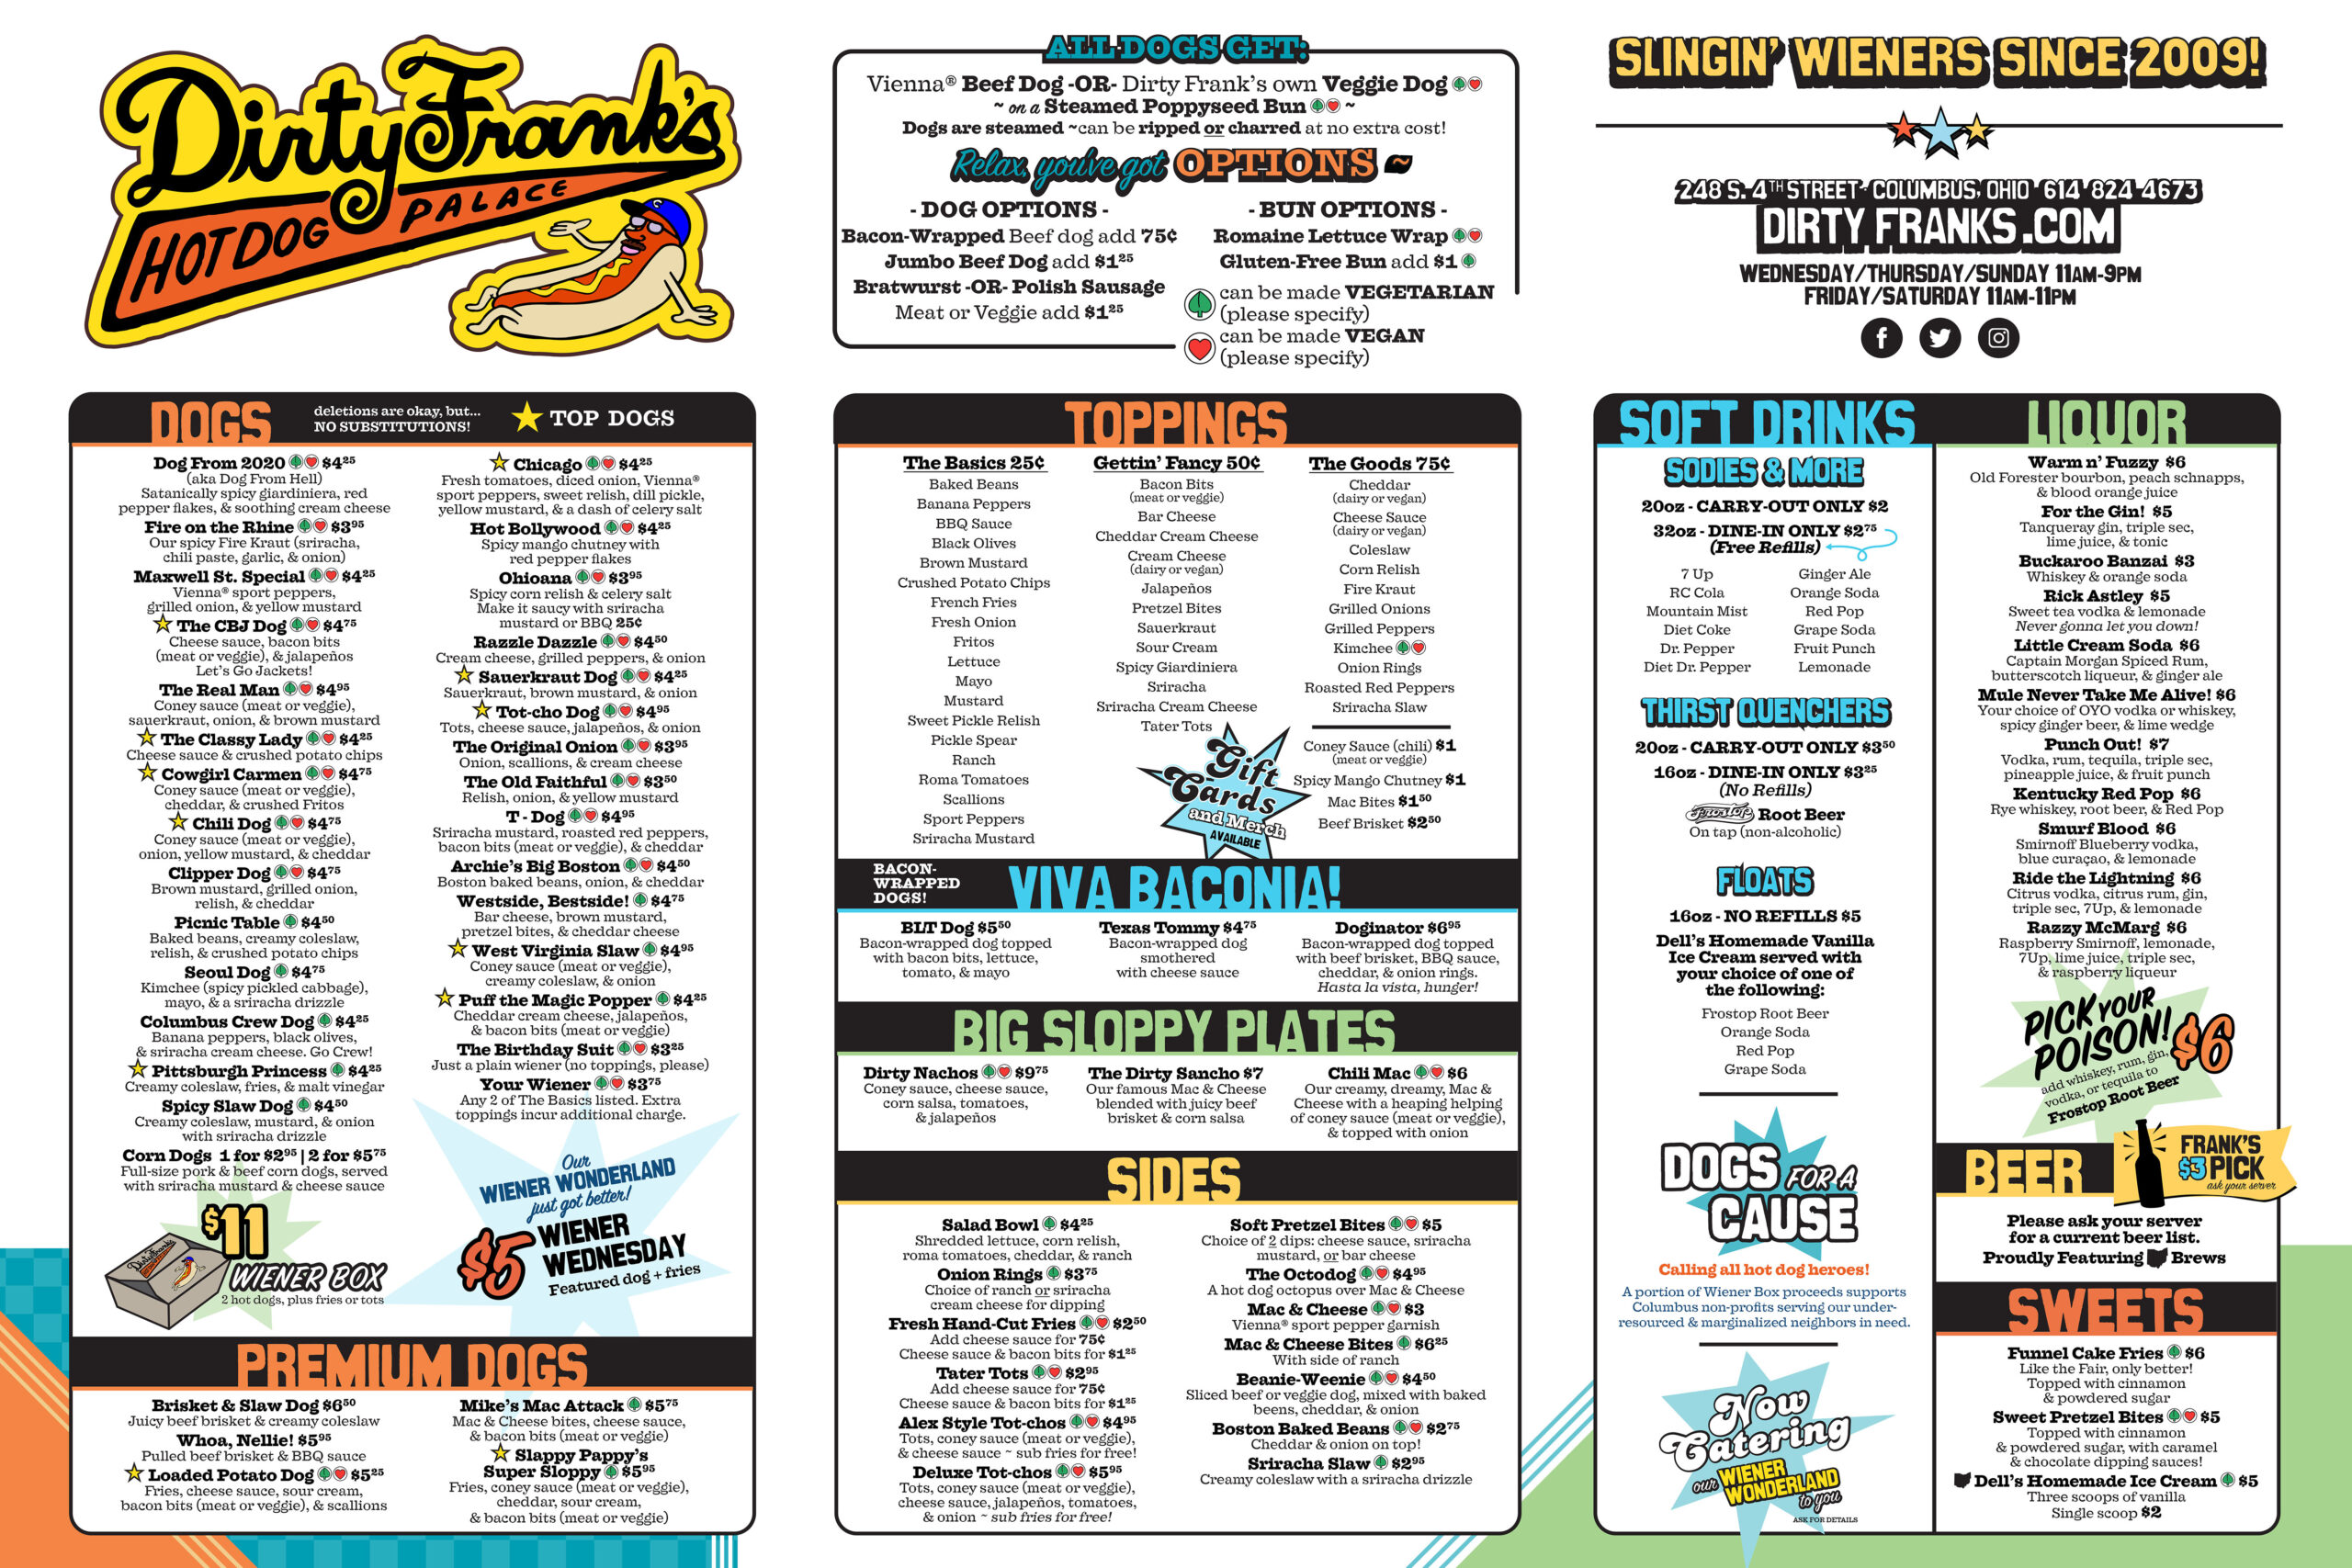 DirtyFranks_LIMITEDmenu_V2_WINDOWMENU_Nov2020_12x18 (1)